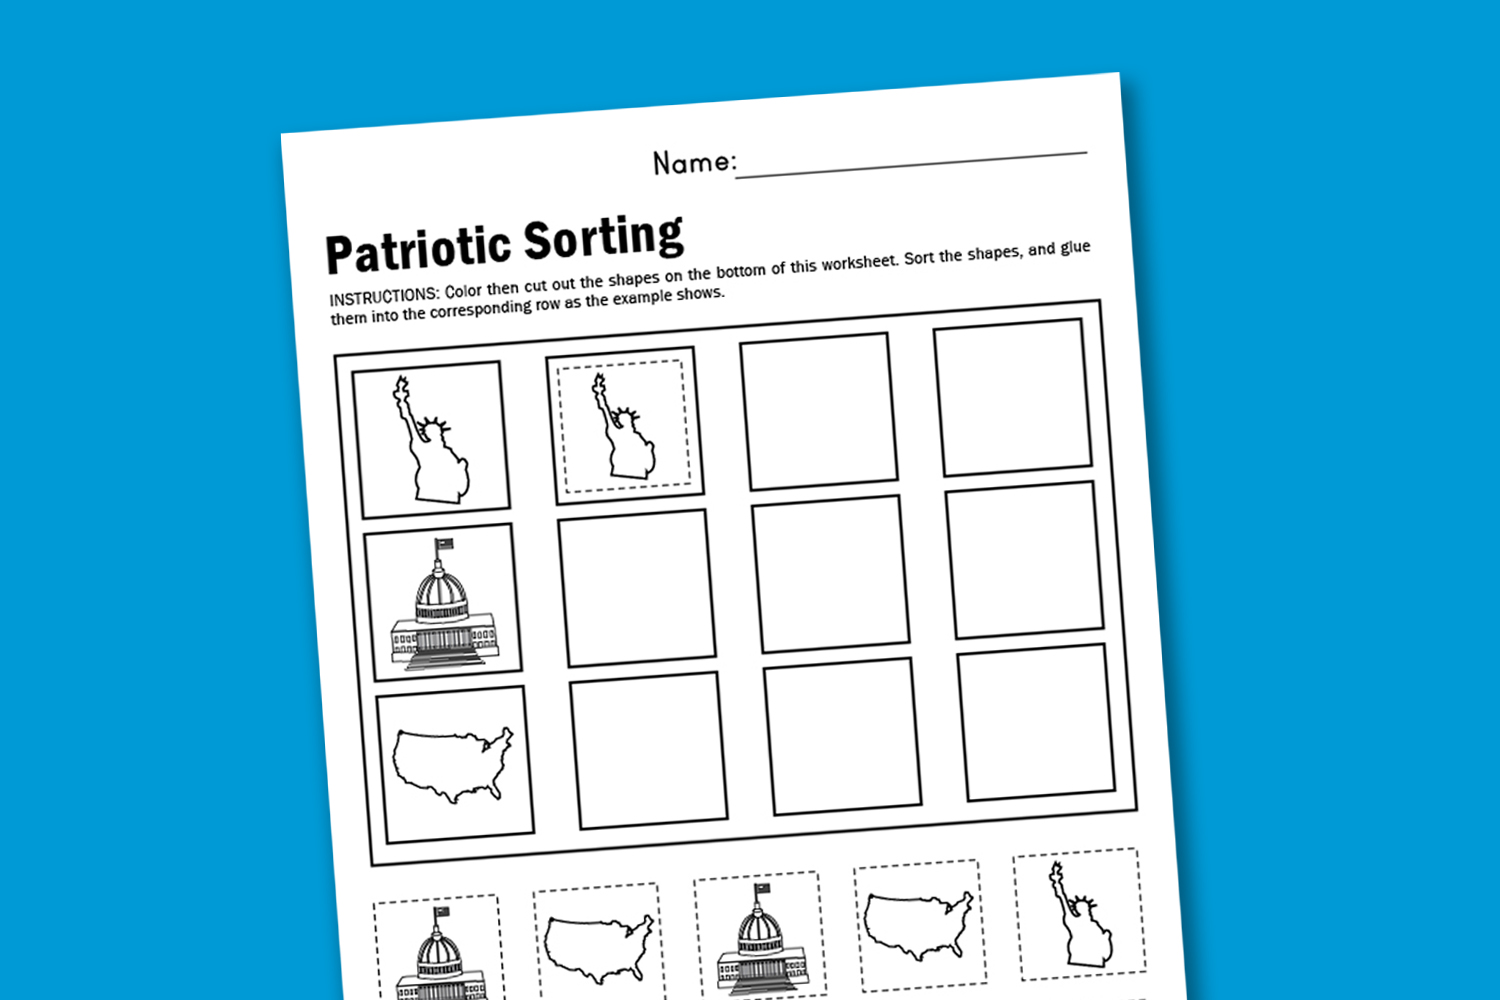 Worksheet Wednesday Patriotic Sorting